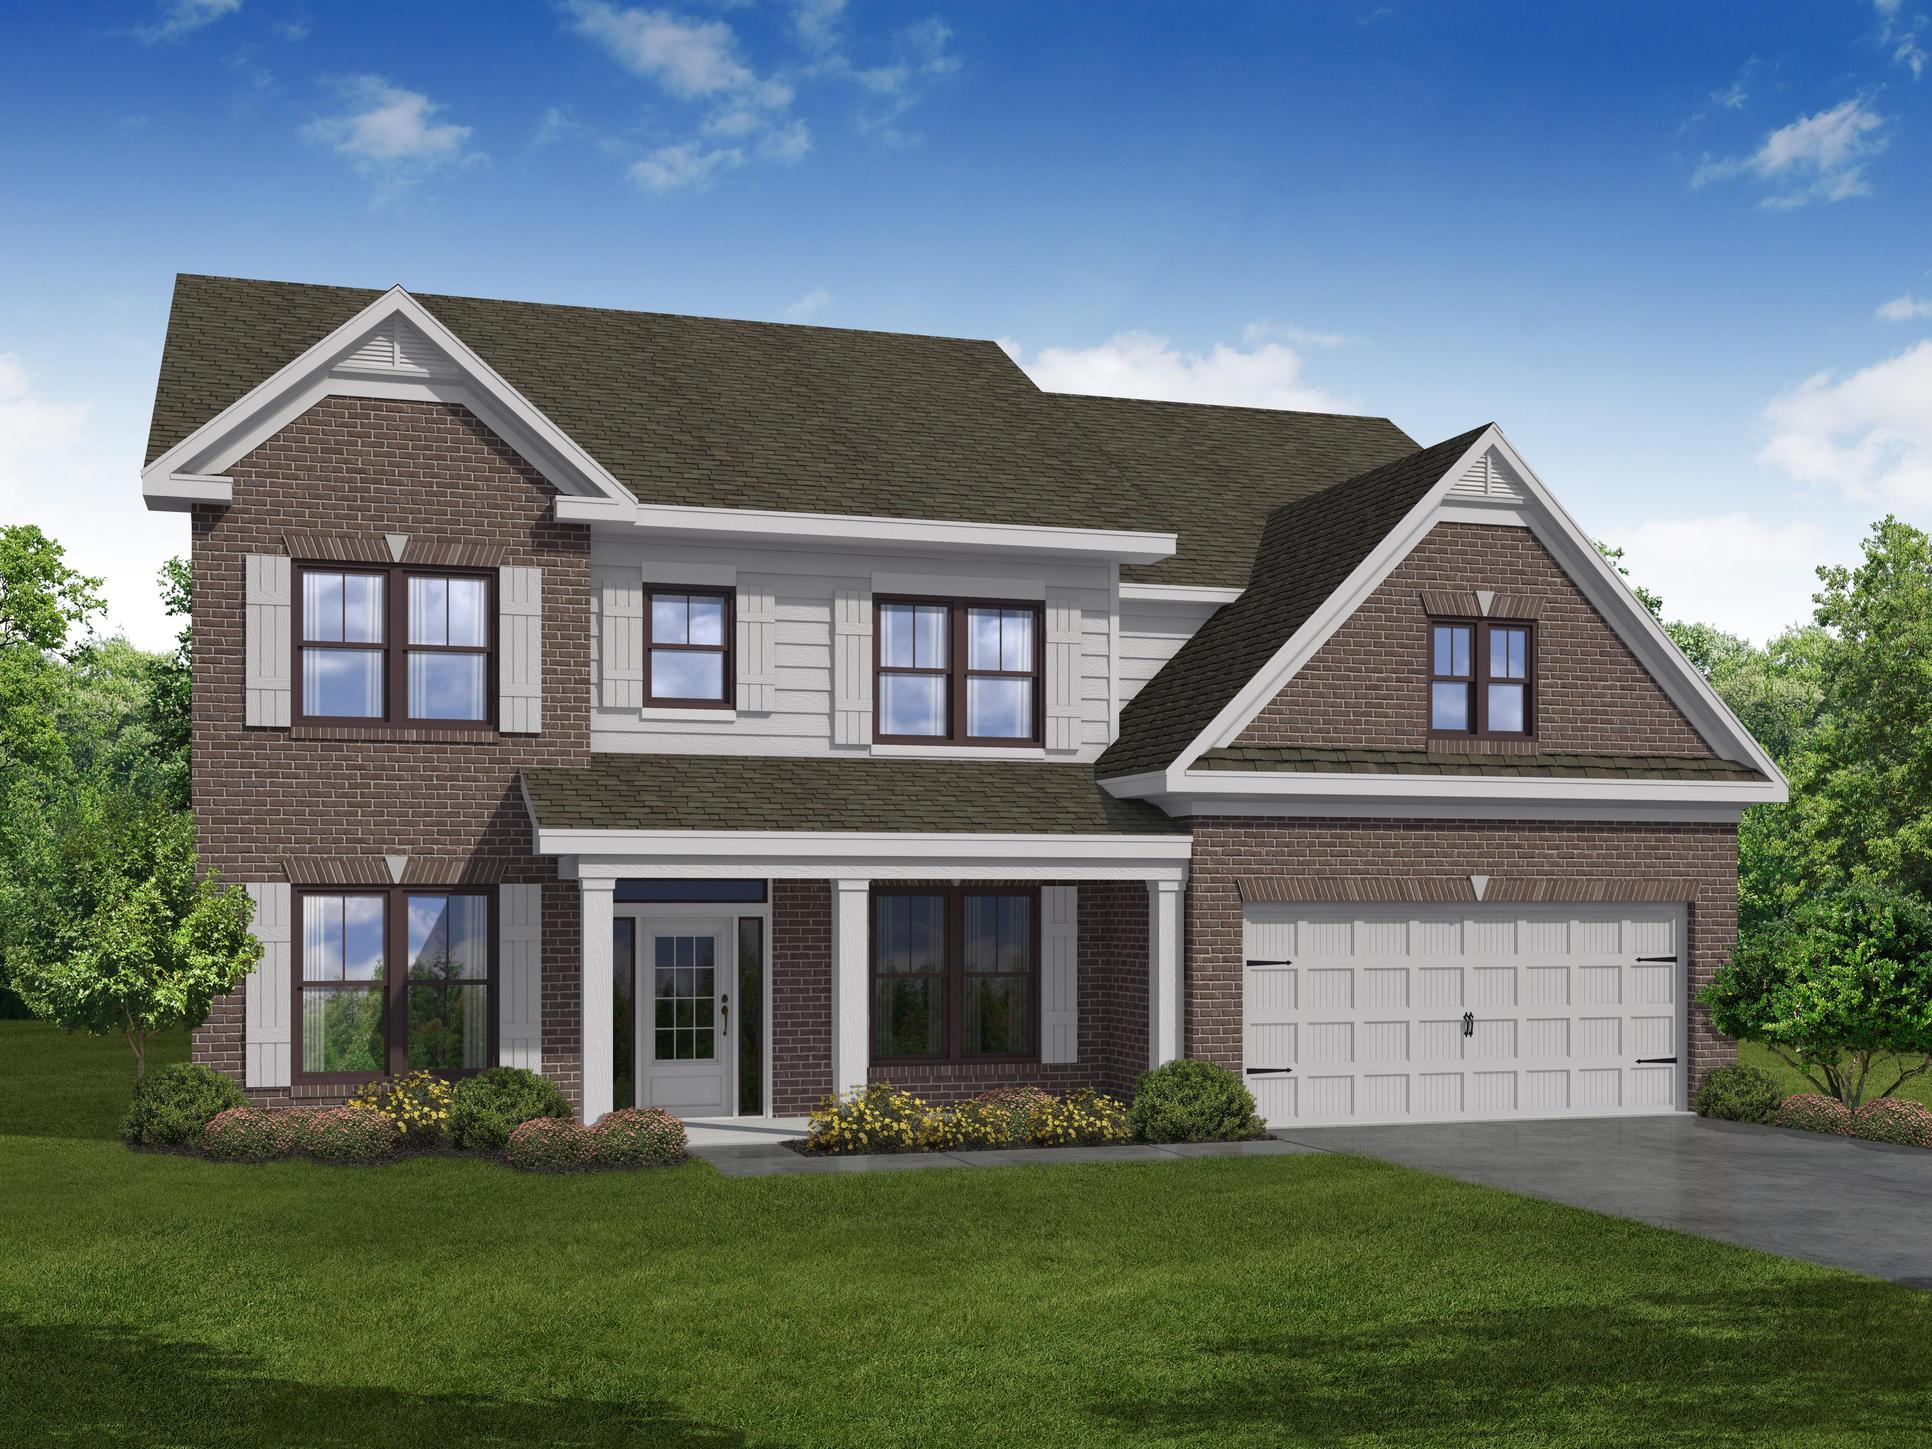 The Turnbridge by Chafin Communities